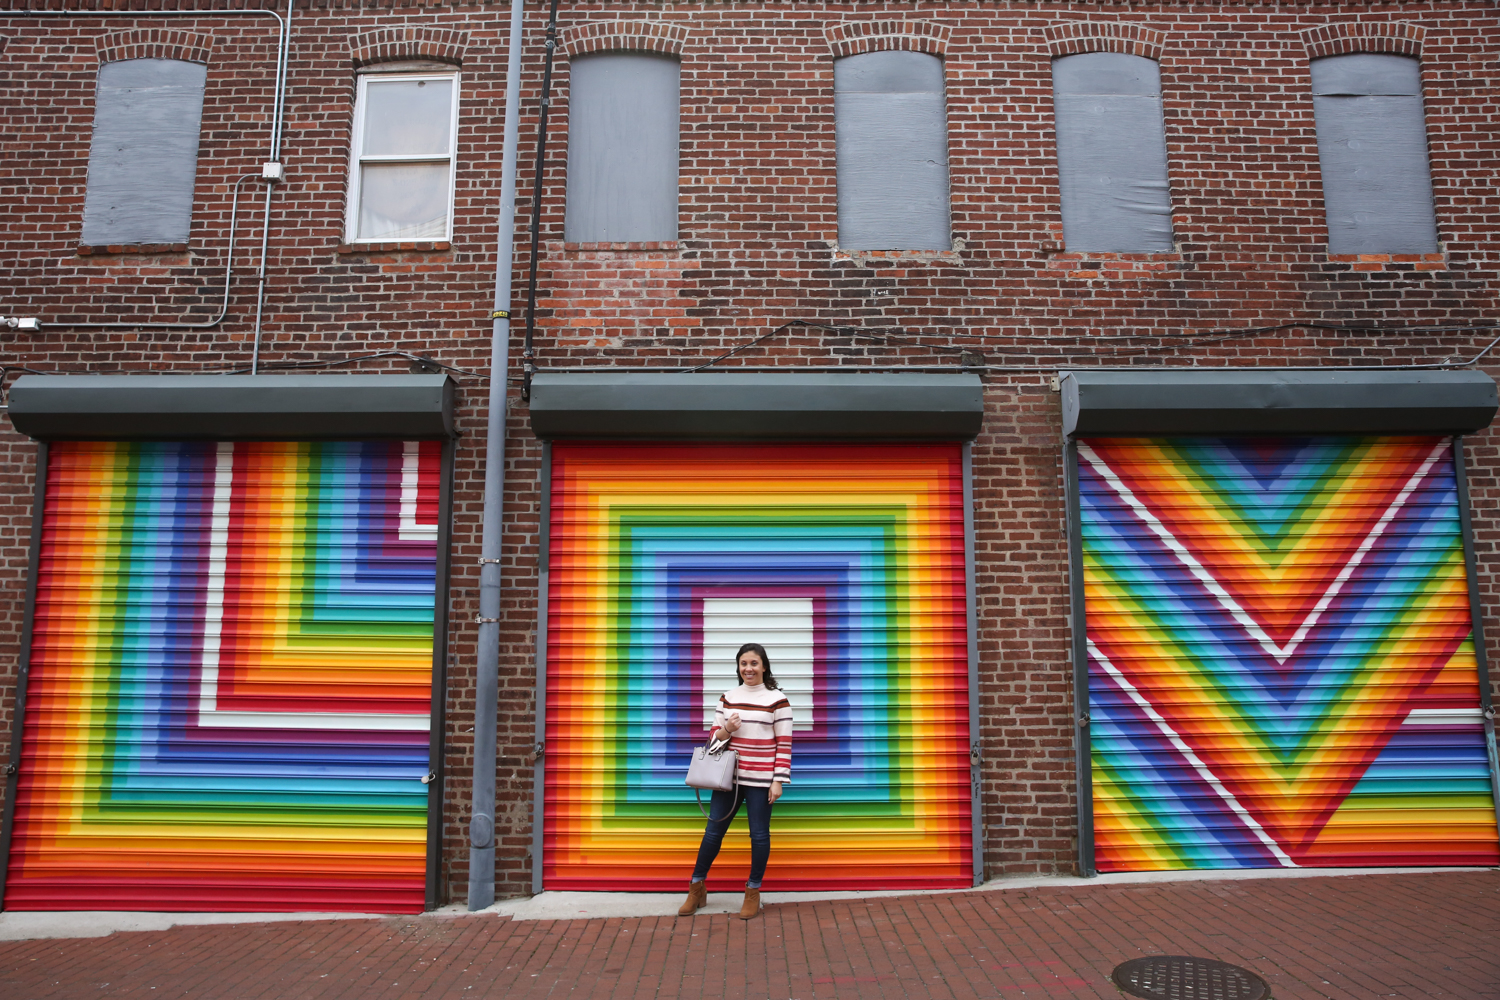 This rainbow-hued mural by Lisa Marie Thalhammer in Blagden Alley is perennially popular for a reason. Wether you want to post the entire mural or focus on the details, there are plenty of Instagram opportunities. (Amanda Andrade-Rhoades/DC Refined)